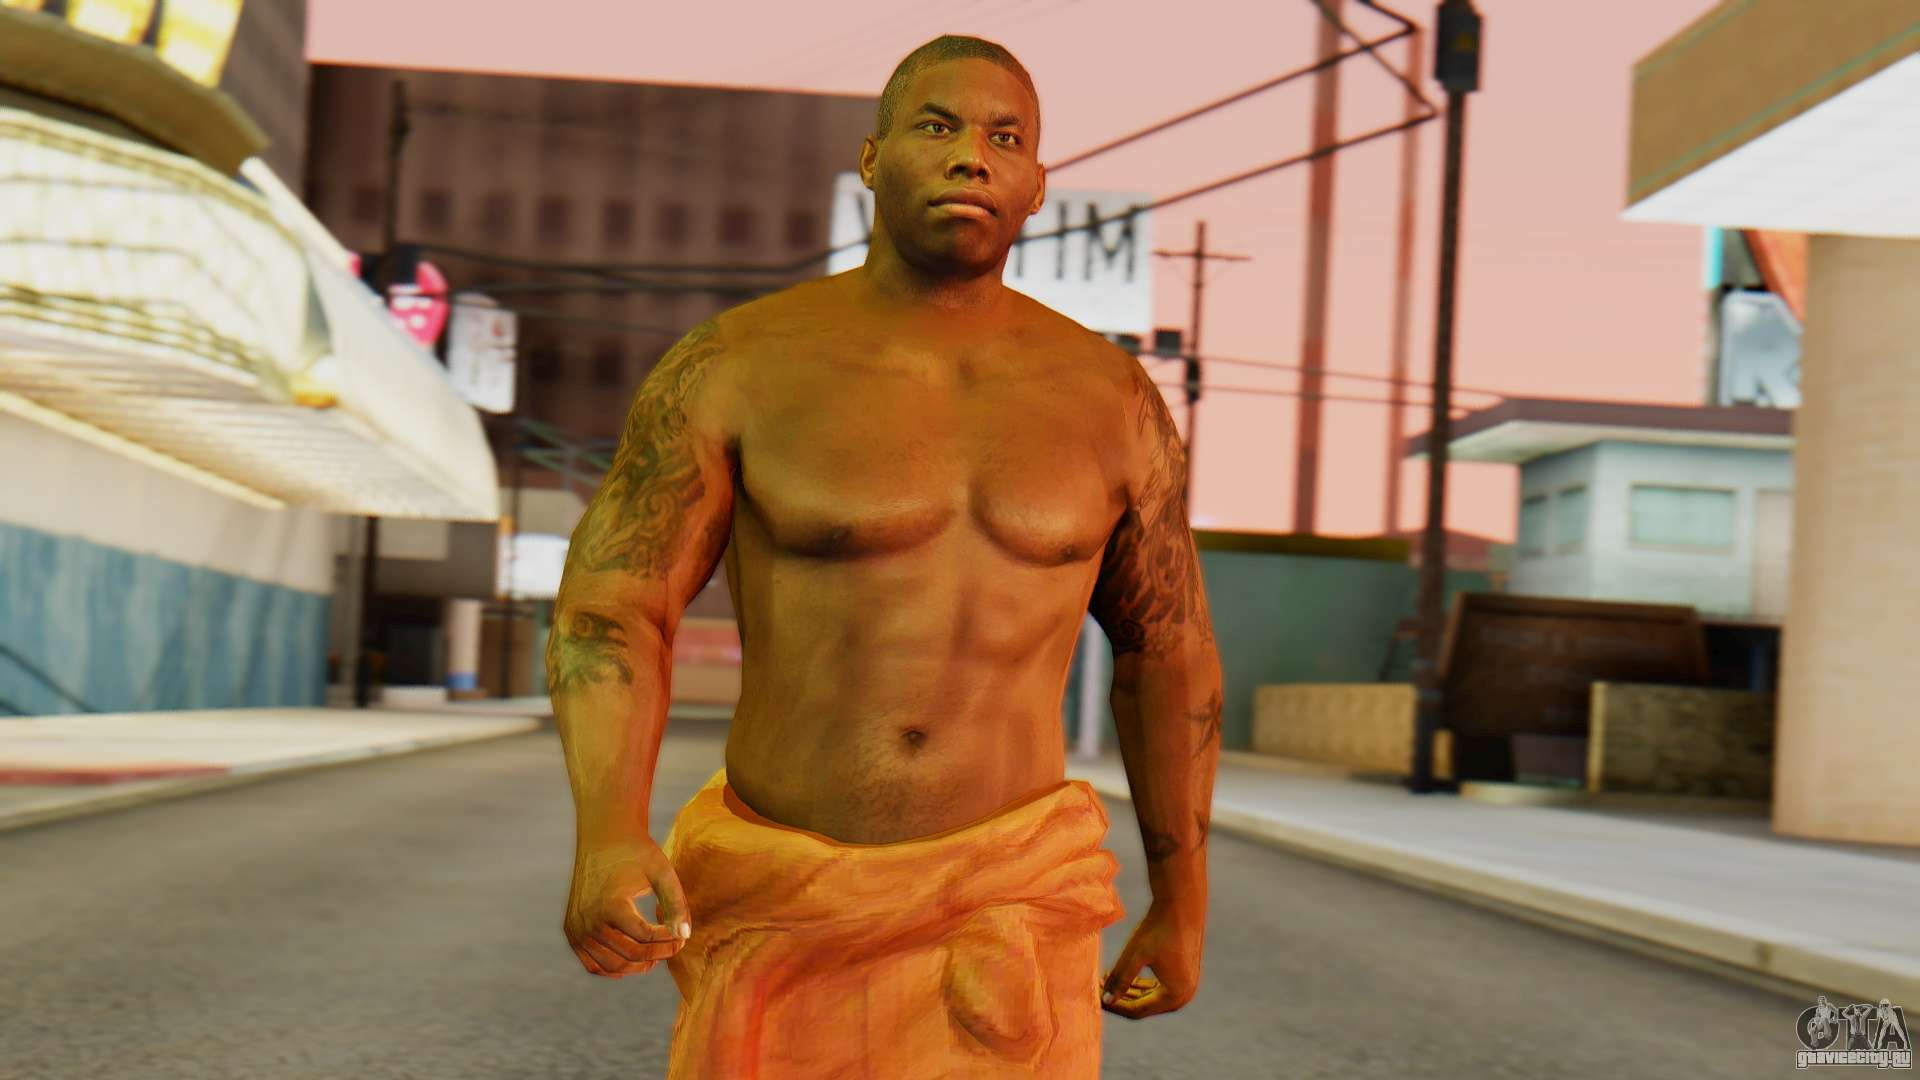 Gta san andreas nude gay skins fucked picture